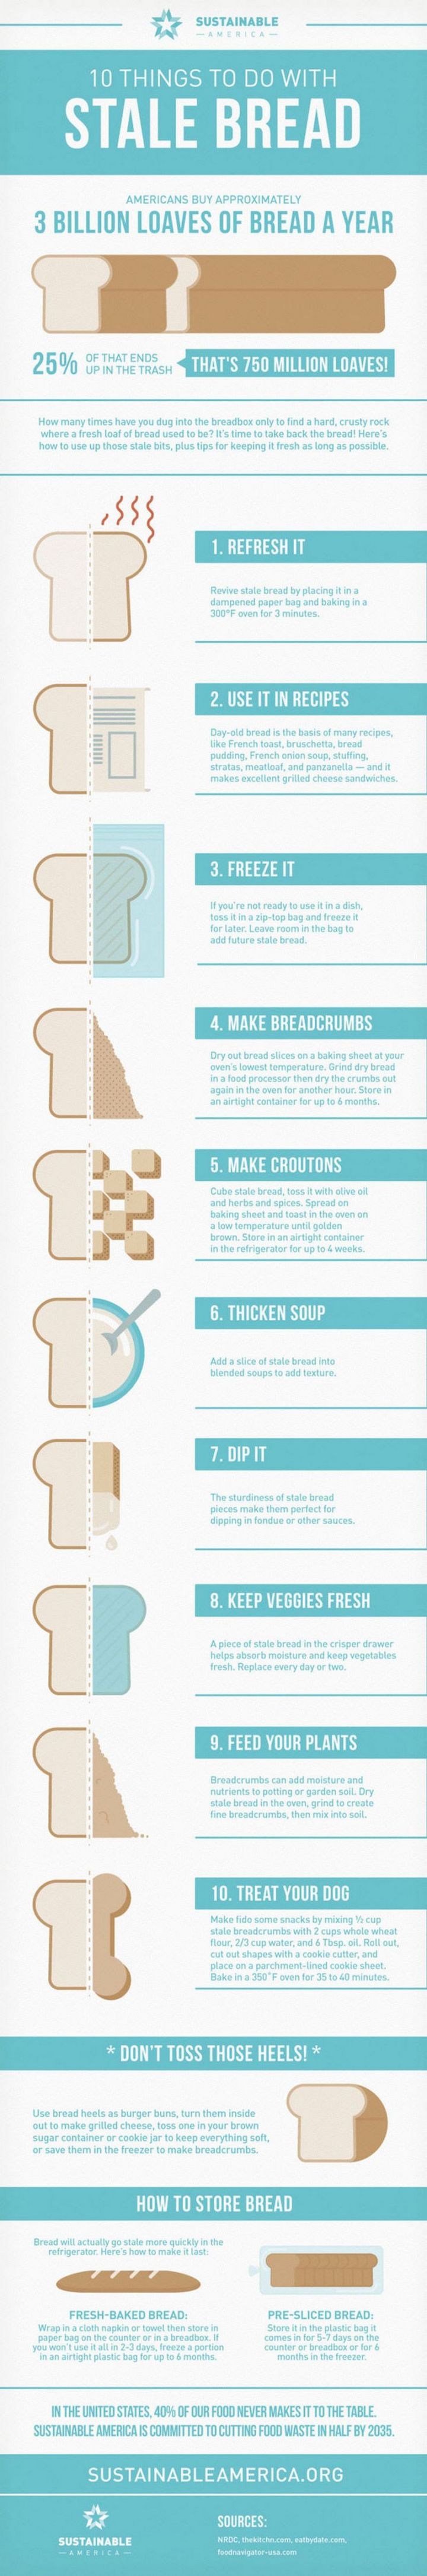 10 things to do with stale bread infographic.